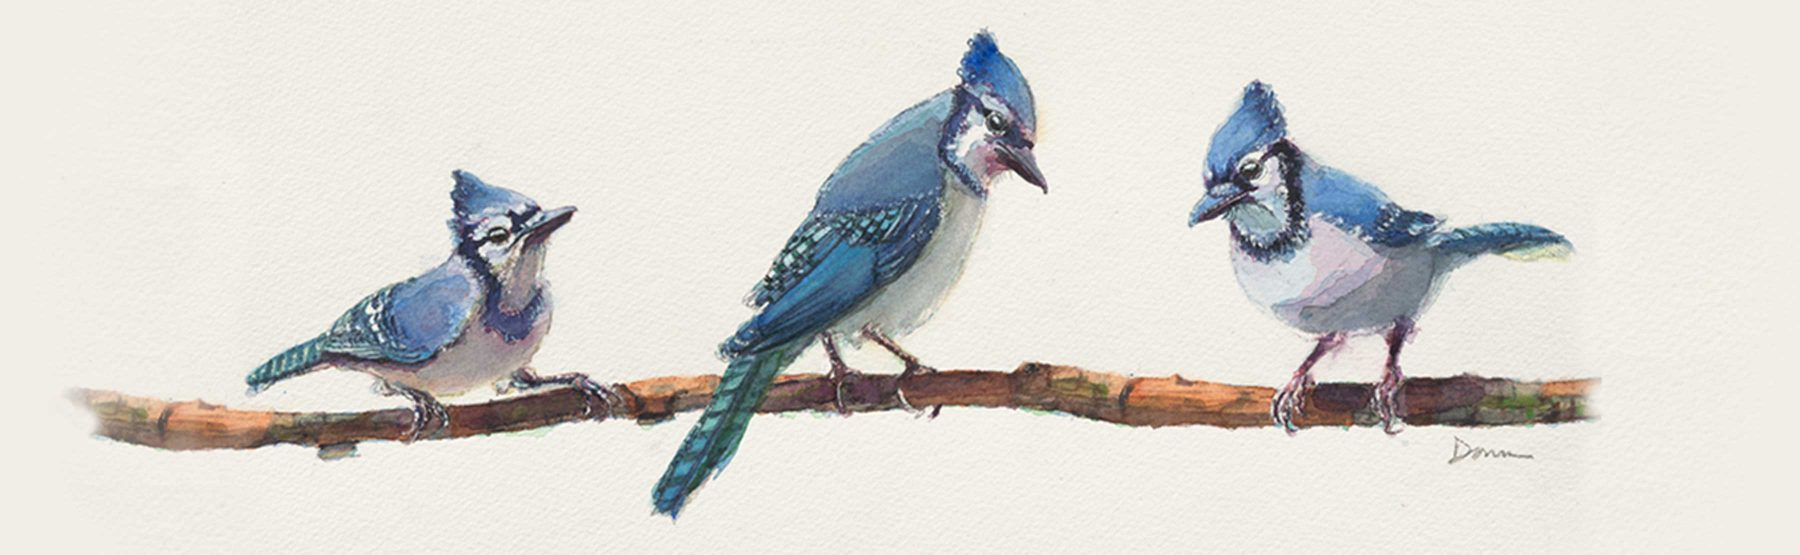 header-background-bluejay-crop